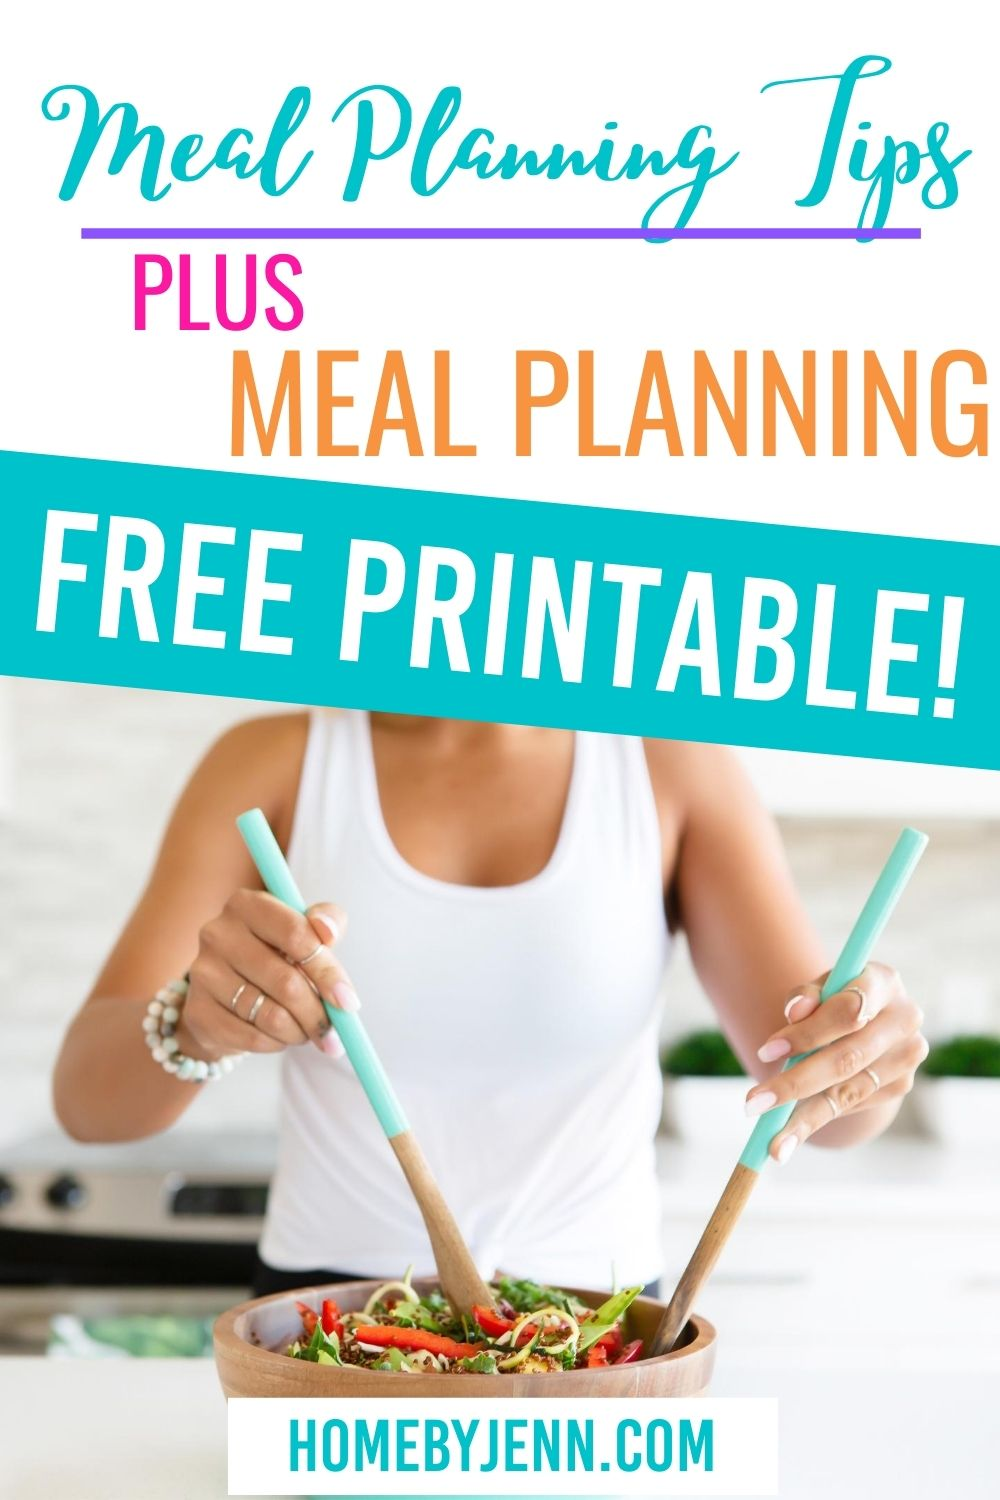 Set up a meal planning system that works. Get some meal planning tips that will save you time and overwhelm. #mealplan #mealplanning #menu #weeklymenu #weeklymealplan #mealplanningtips via @homebyjenn